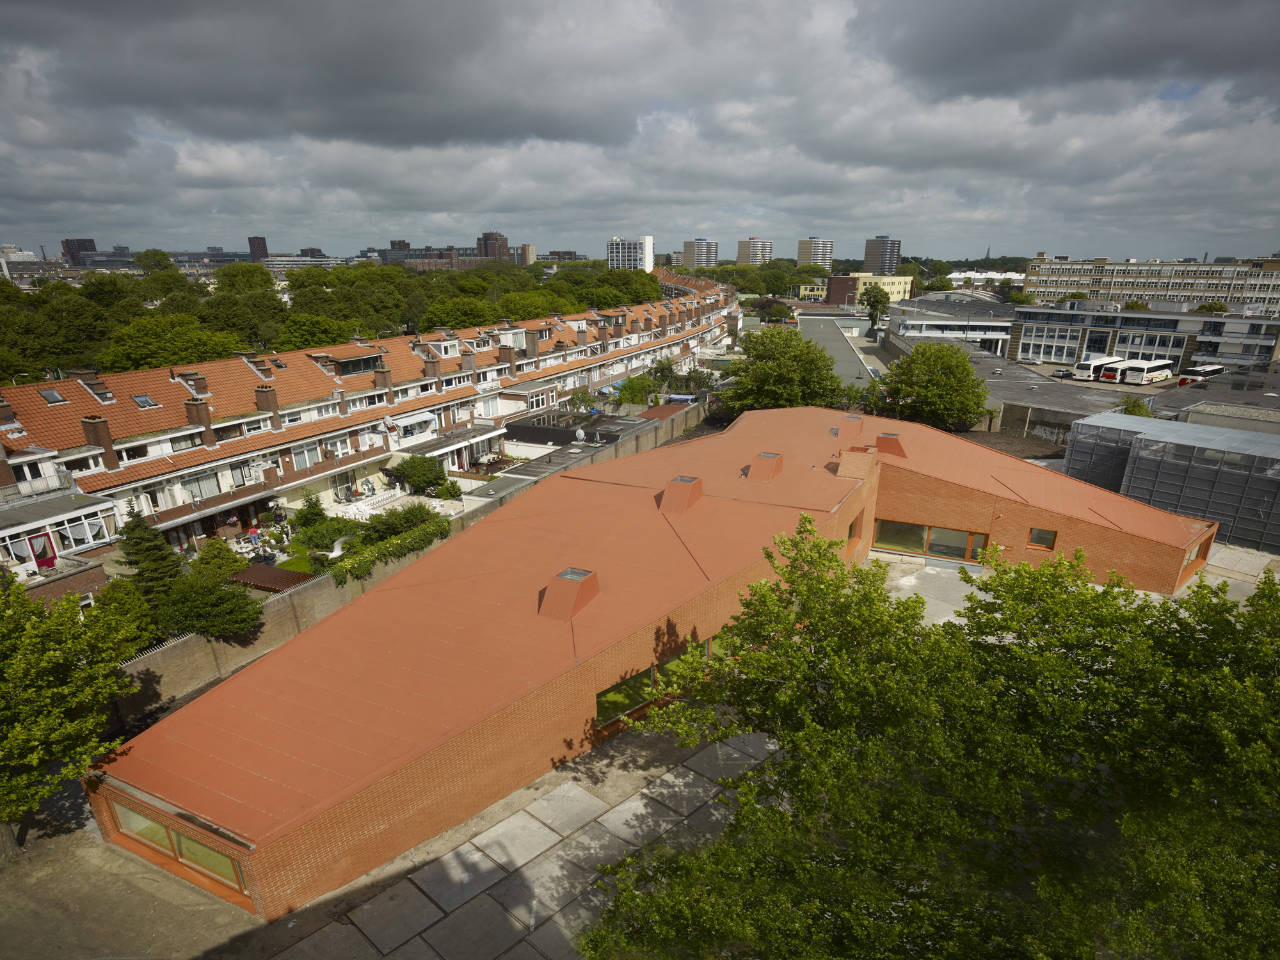 Primary School The Hague / Rocha Tombal Architects, Courtesy of  rocha tombal architects